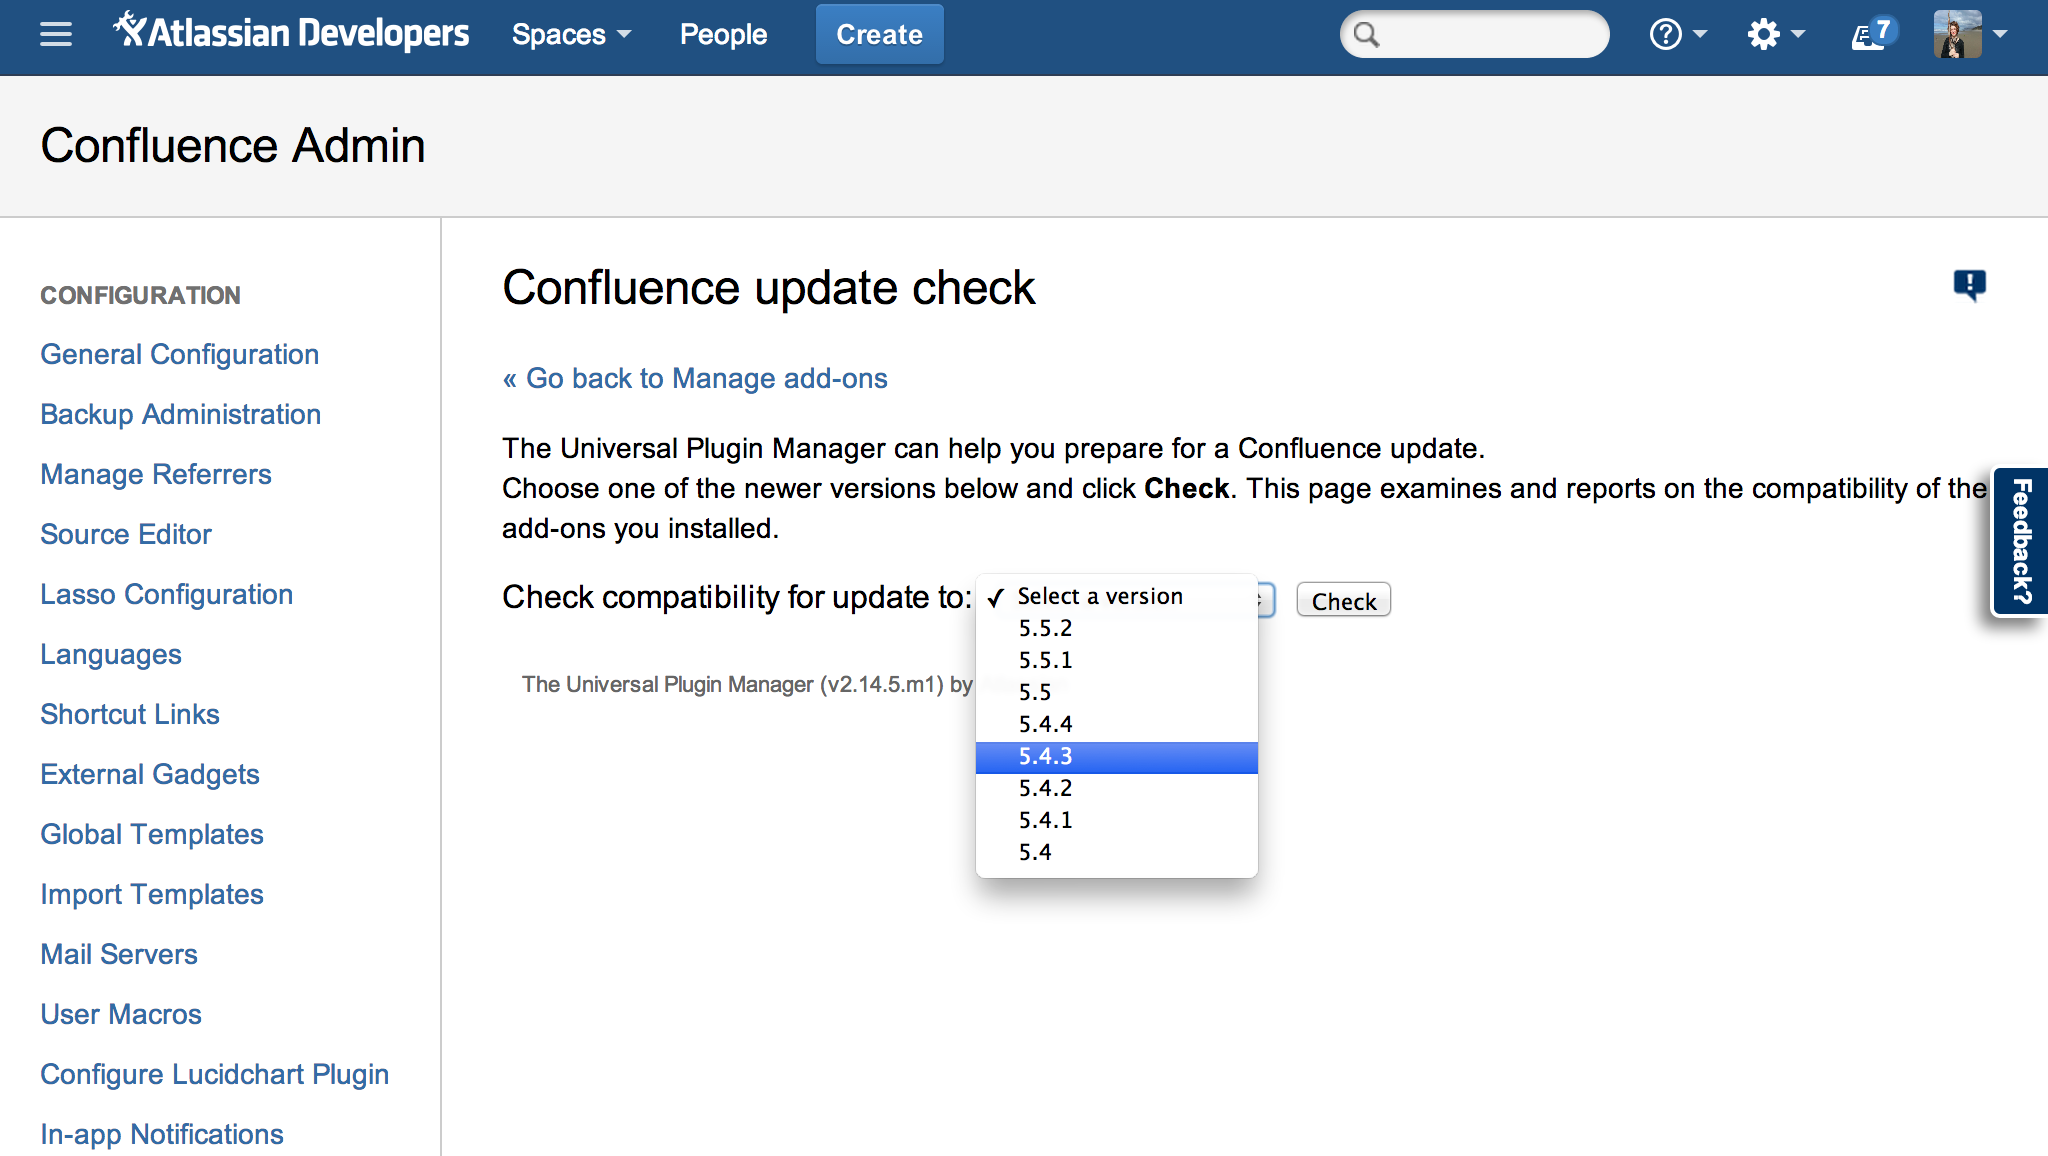 Confluence Update check